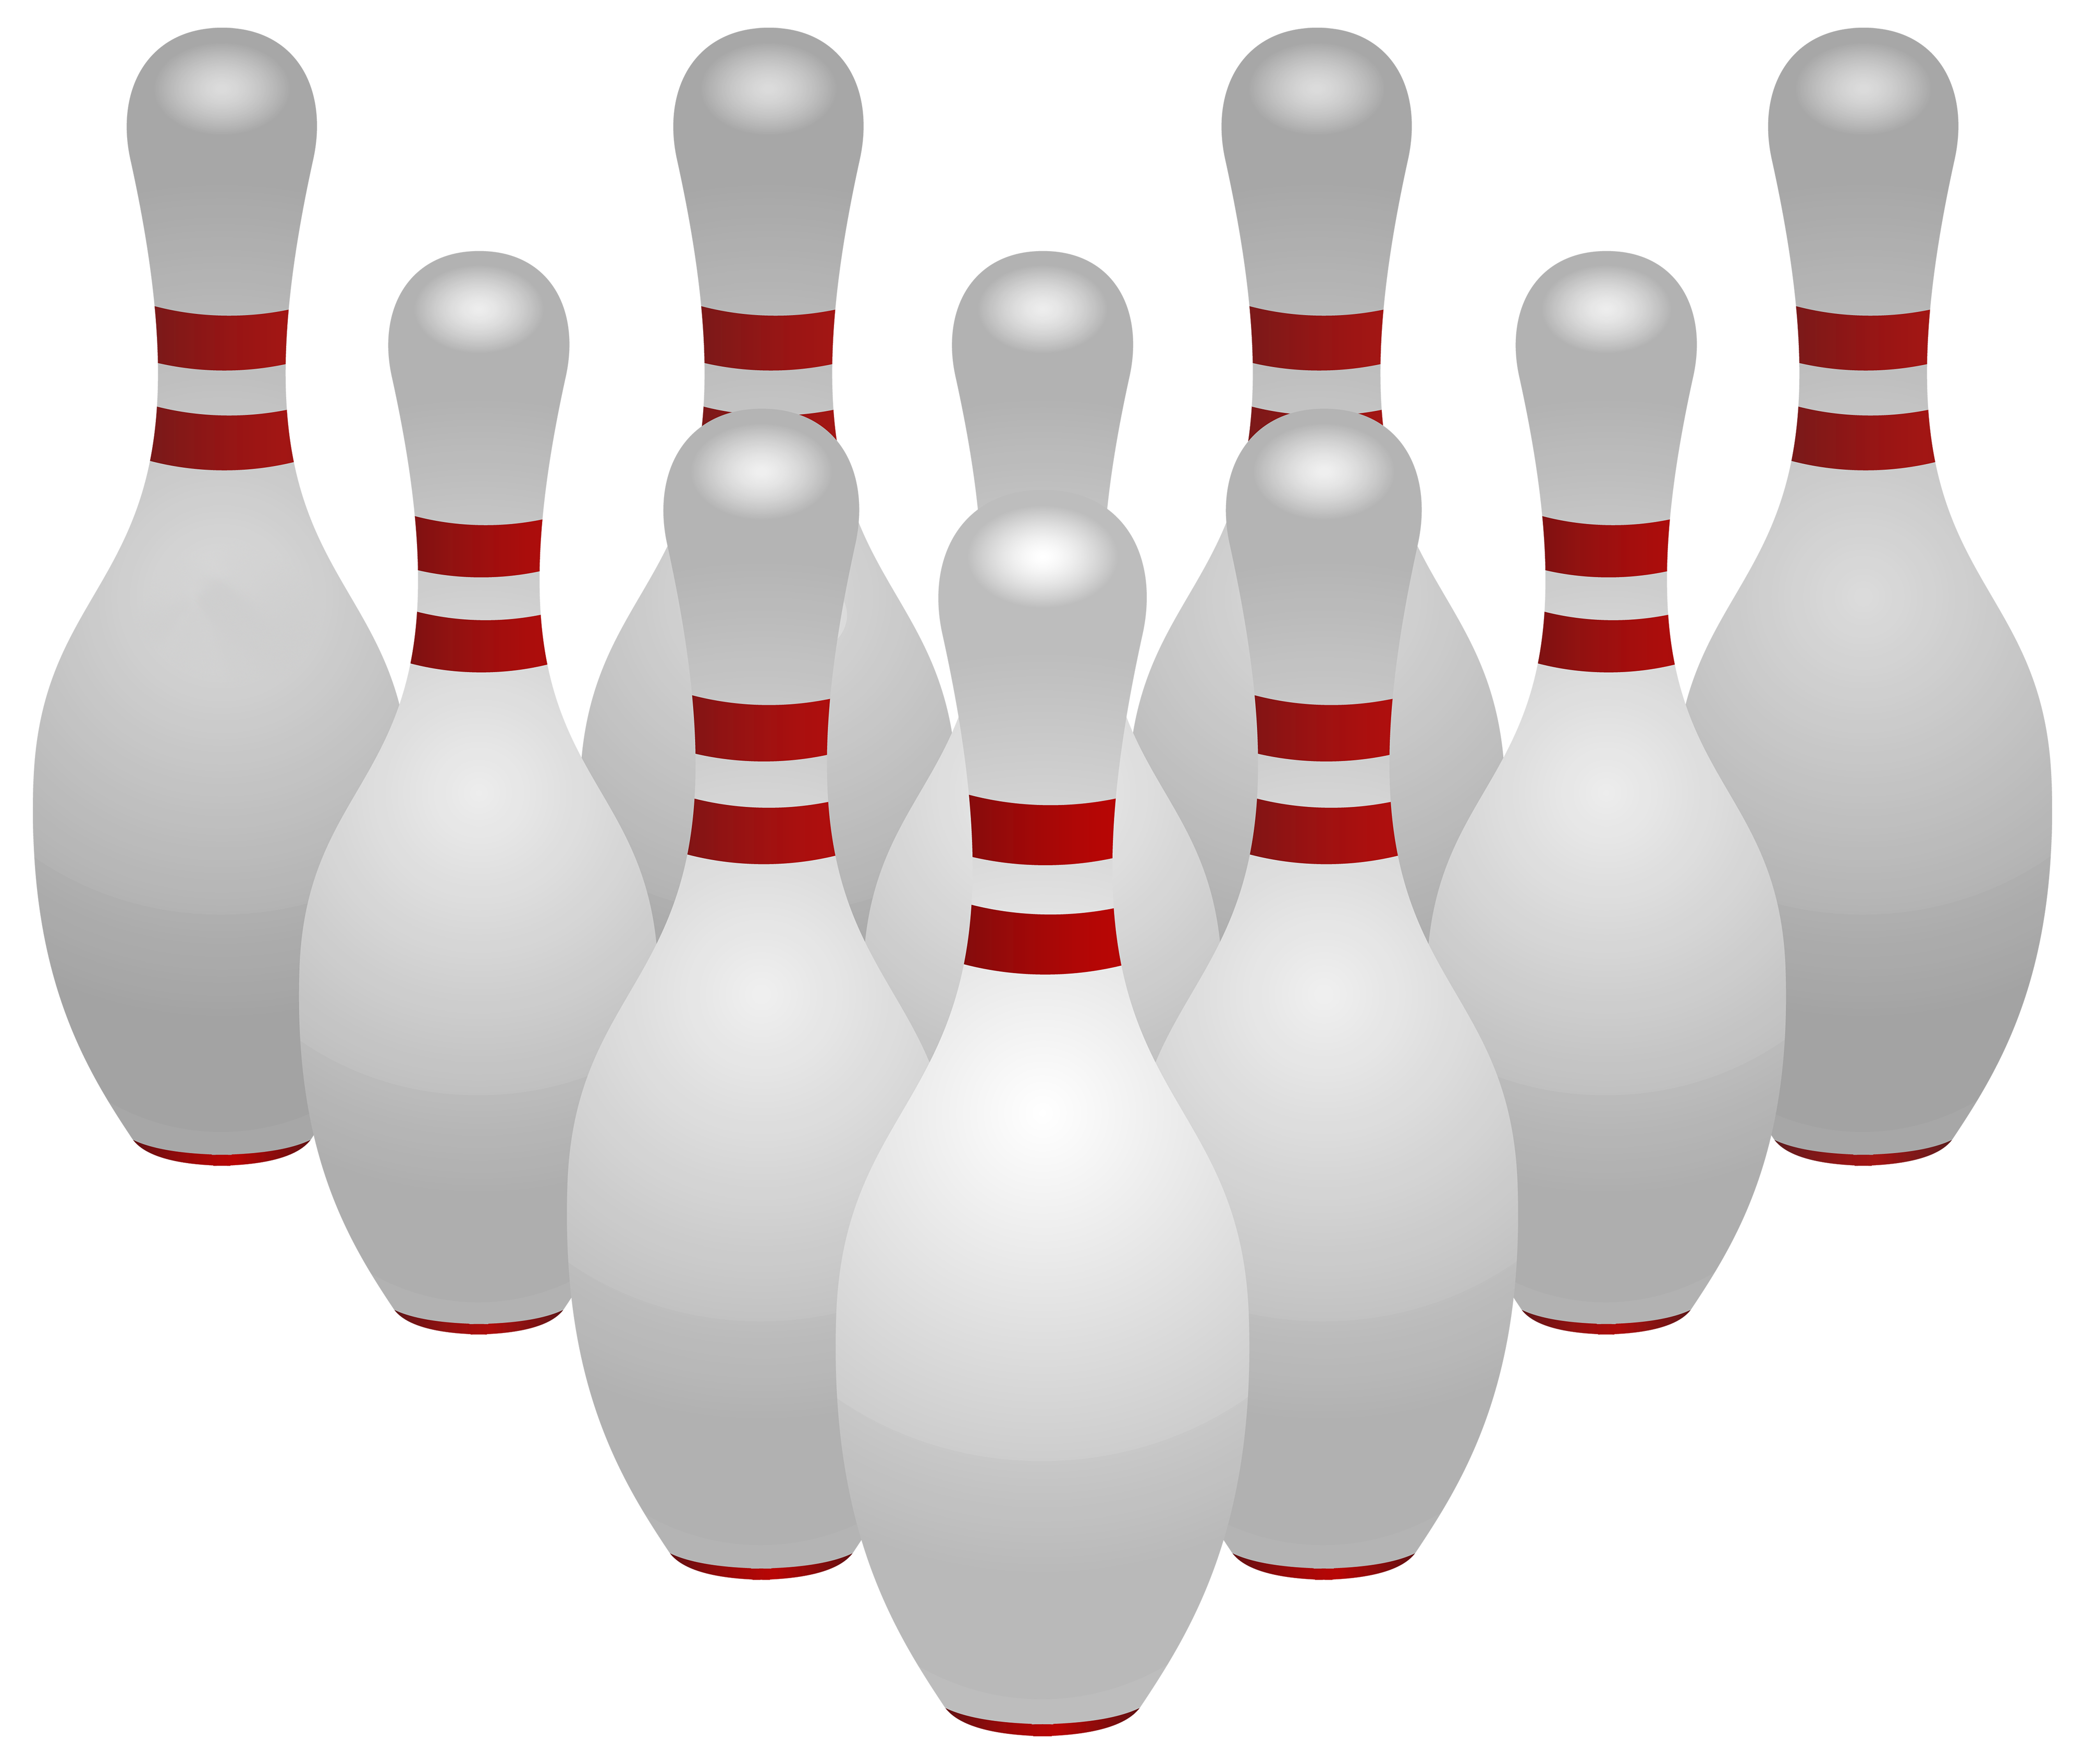 Pins clipart. Bowling png best web